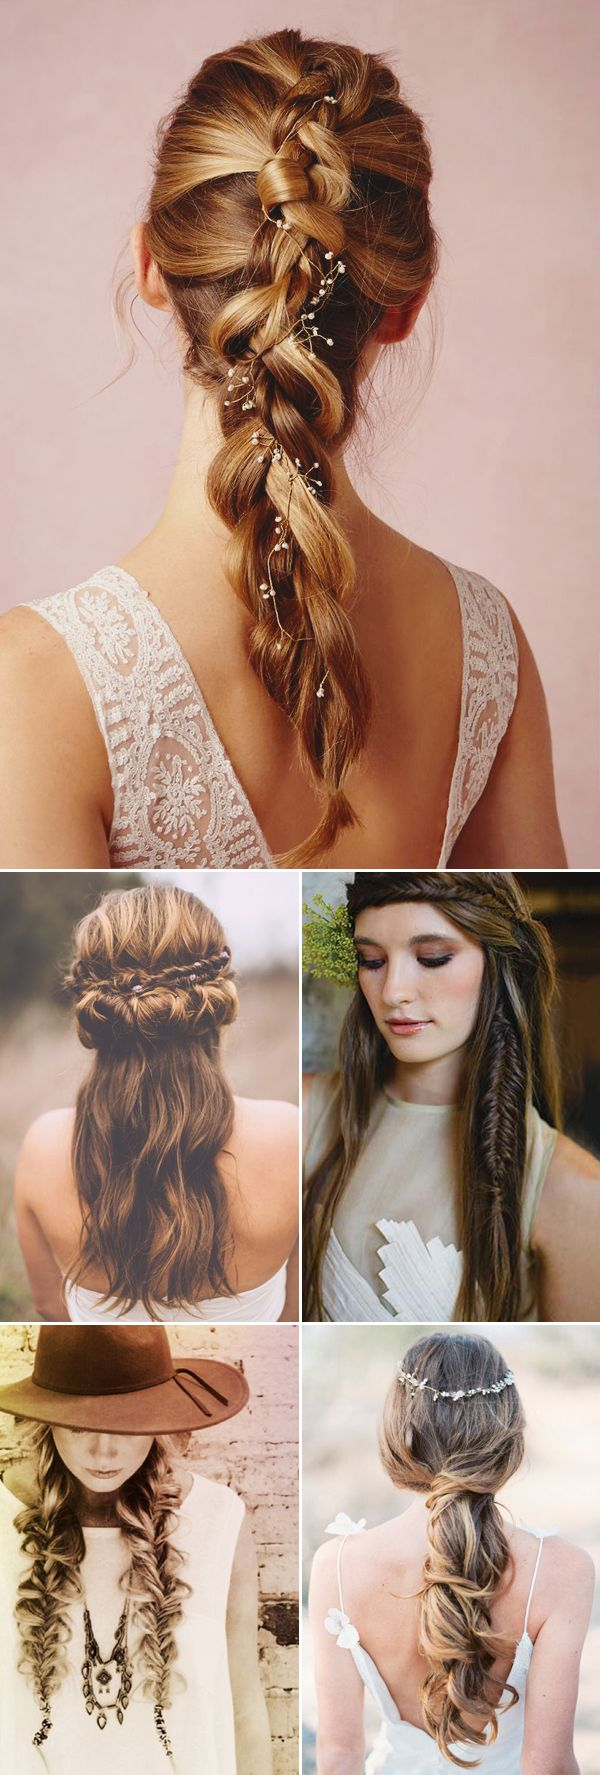 30 boho-chic hairstyles for 2019 - pretty designs